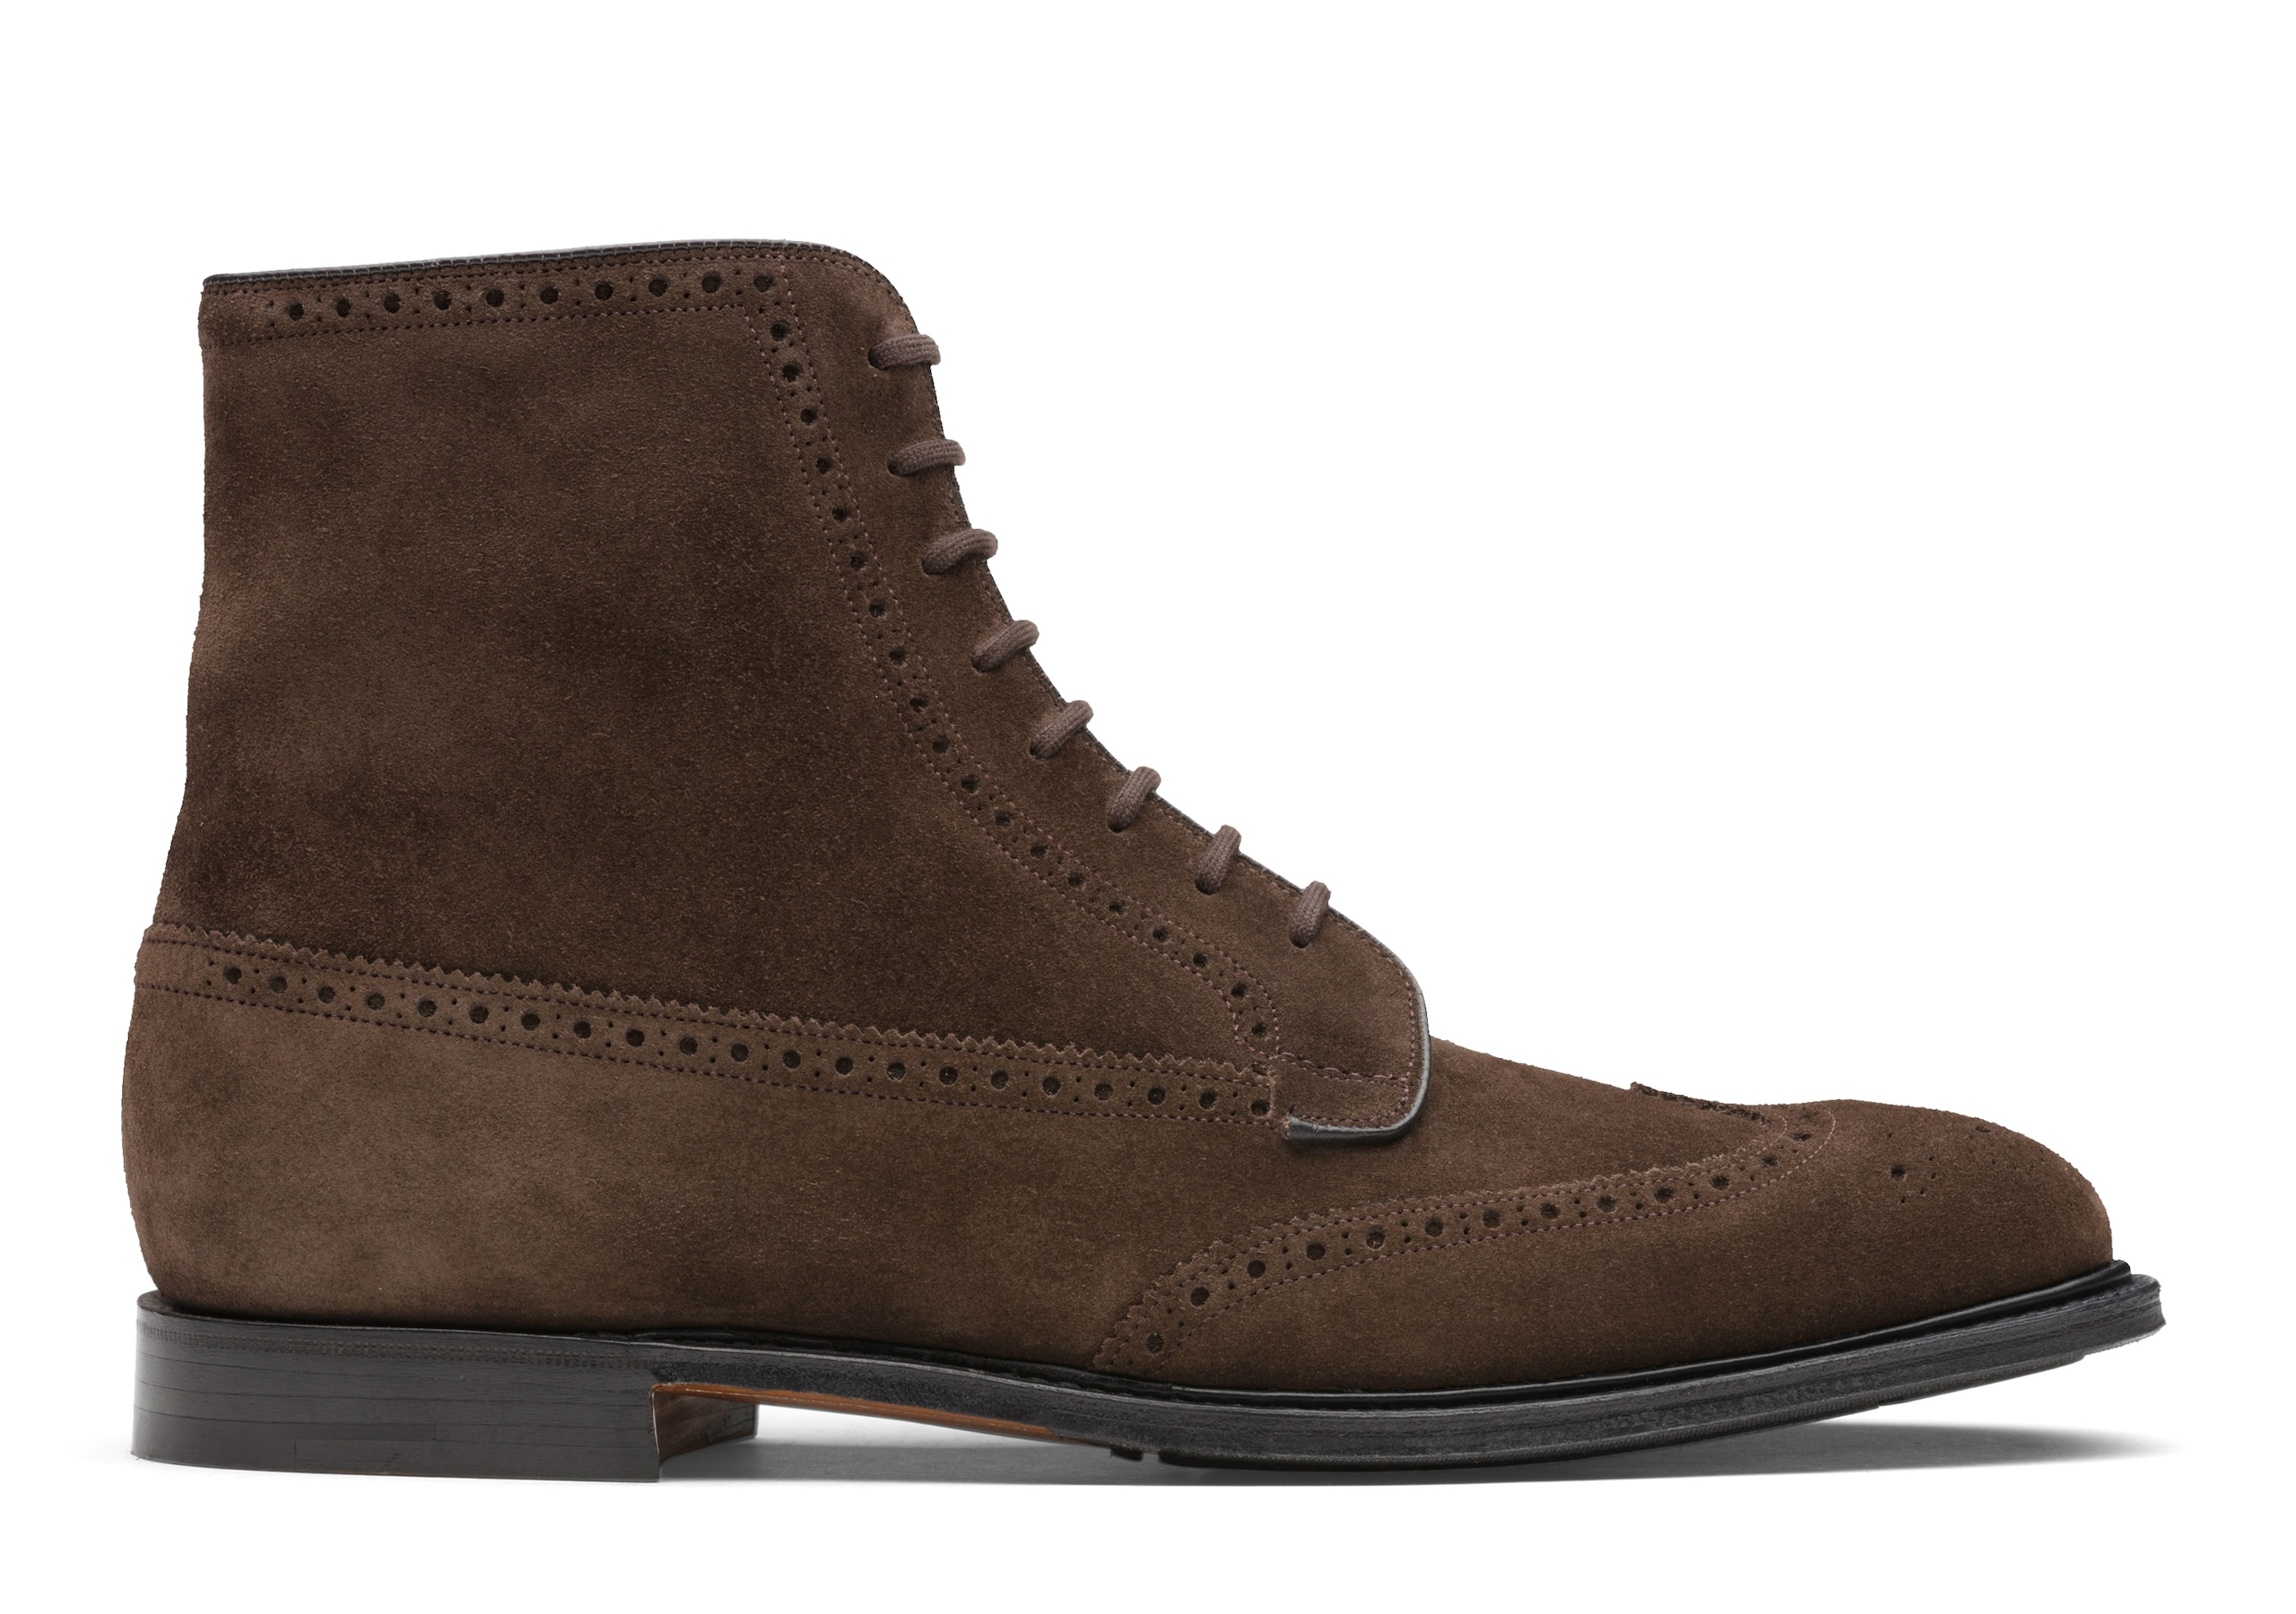 Twiston Church's Suede Lace-Up Boot Brogue Brown